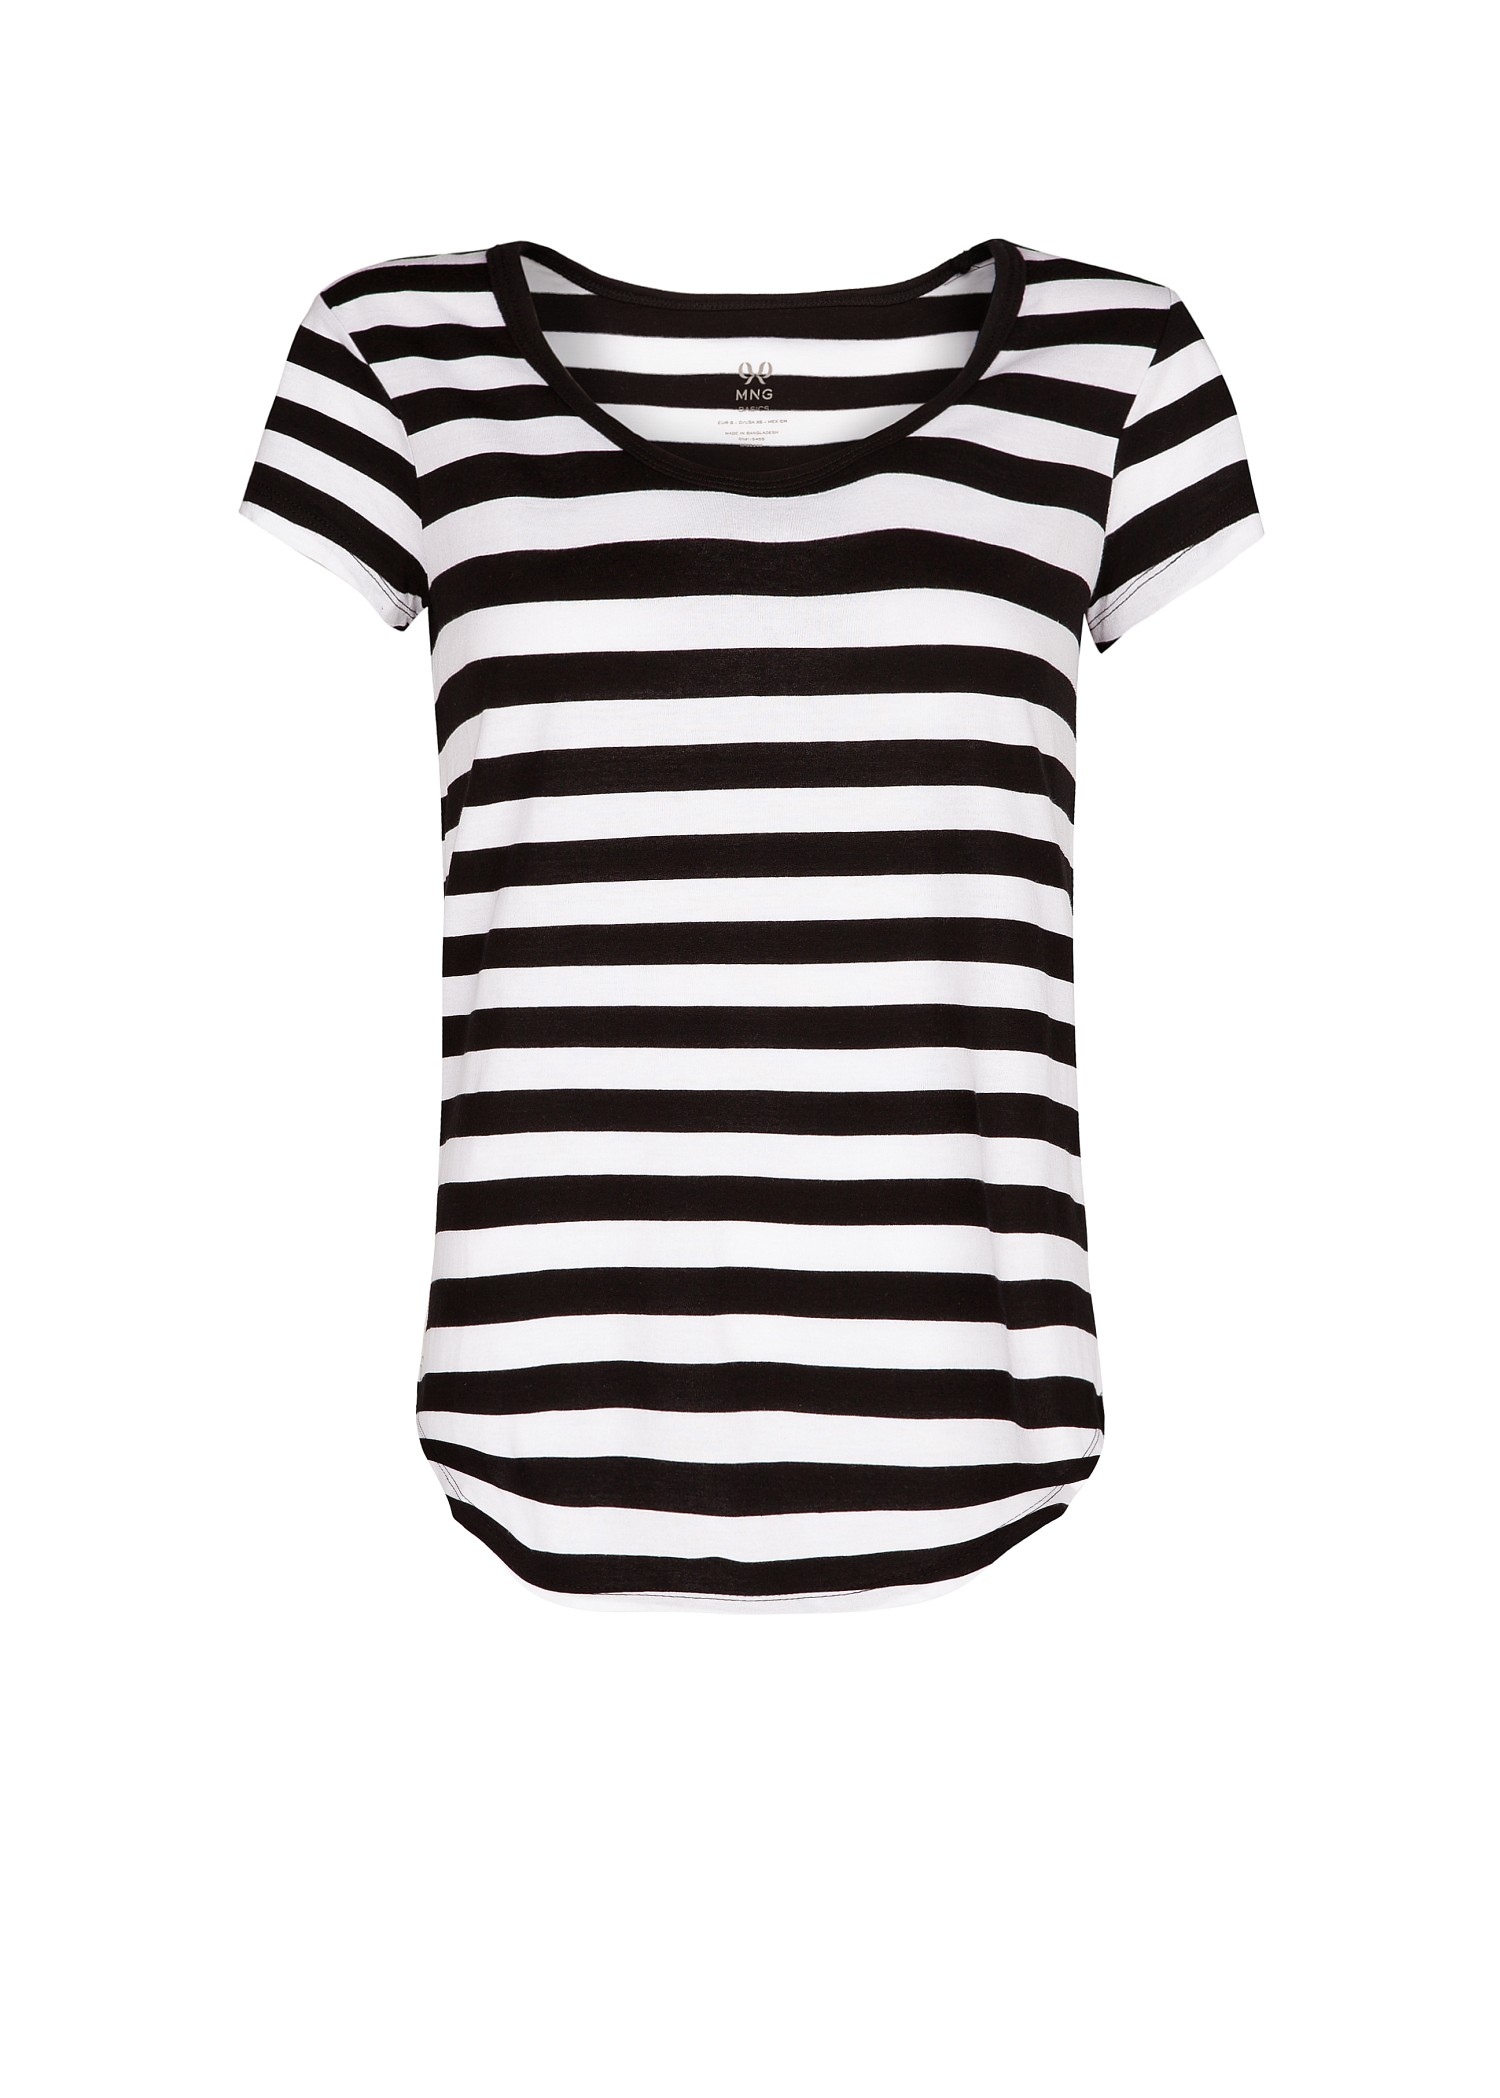 Black And White Striped Shirt Womens Custom Shirt